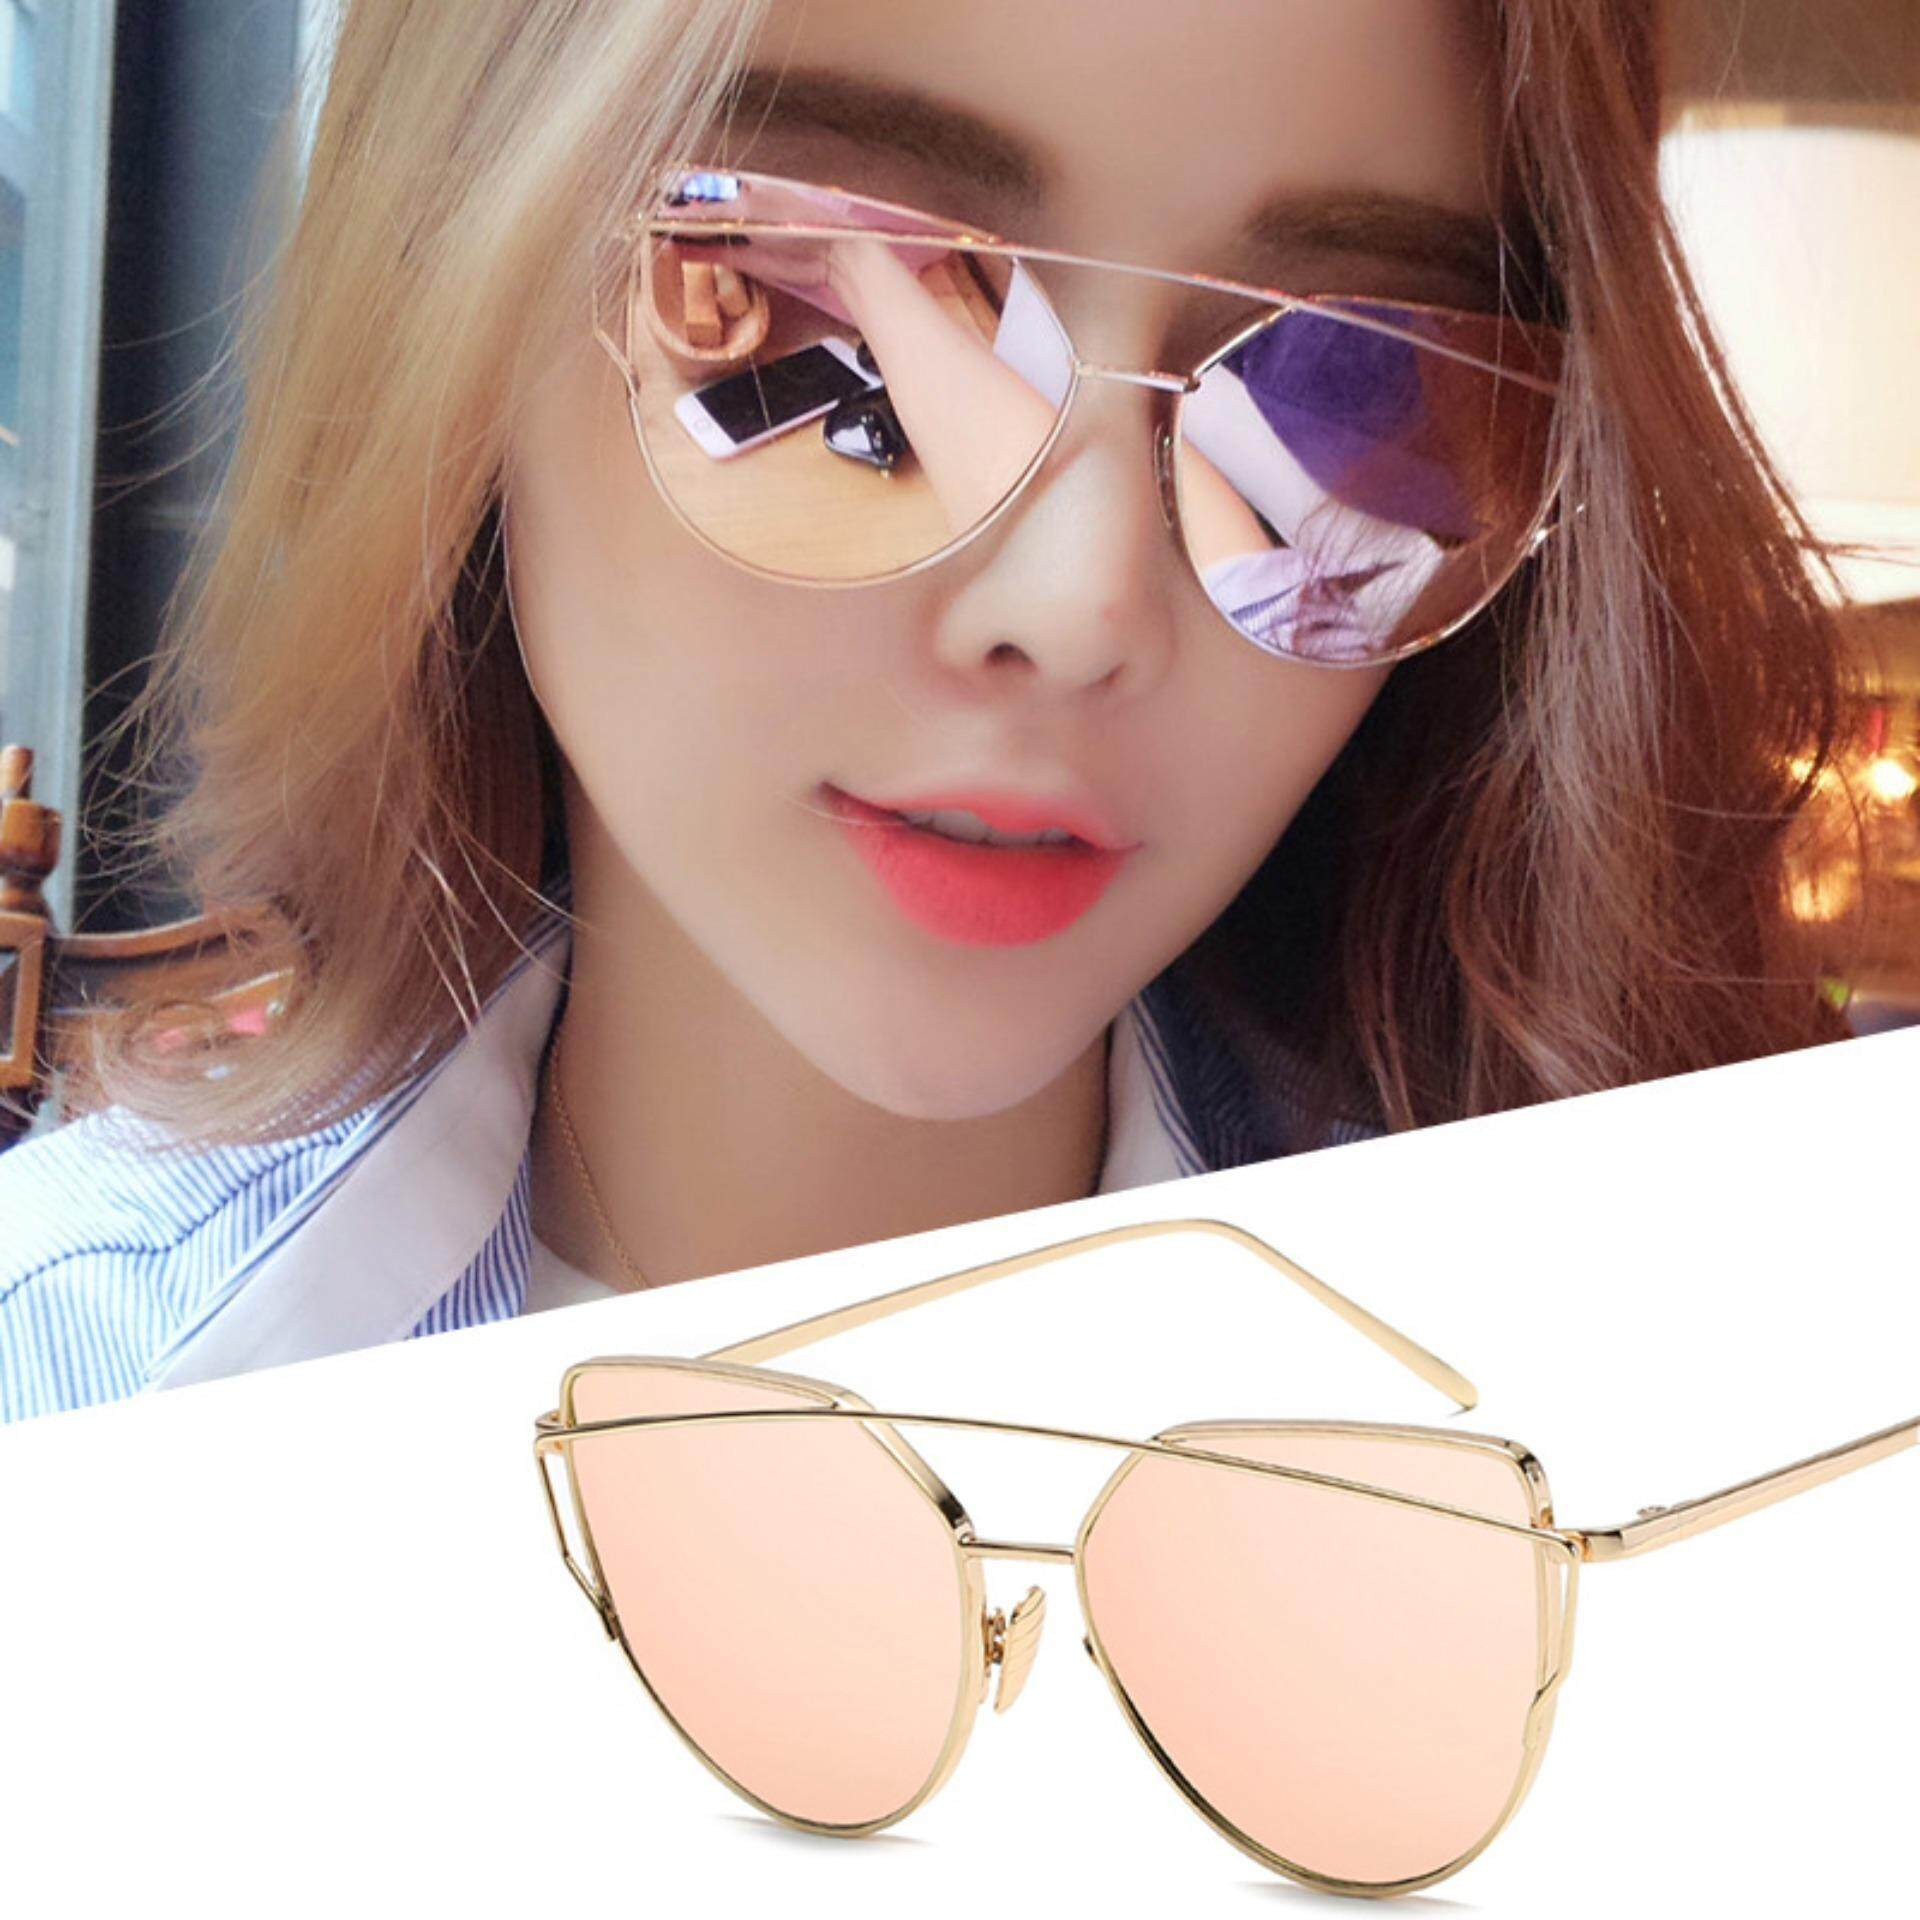 324cc76ddc Fashion Cat Eye Sun Glasses Men and Women Retro Style Sunglasses- Gold  Frame Rose Gold Powder